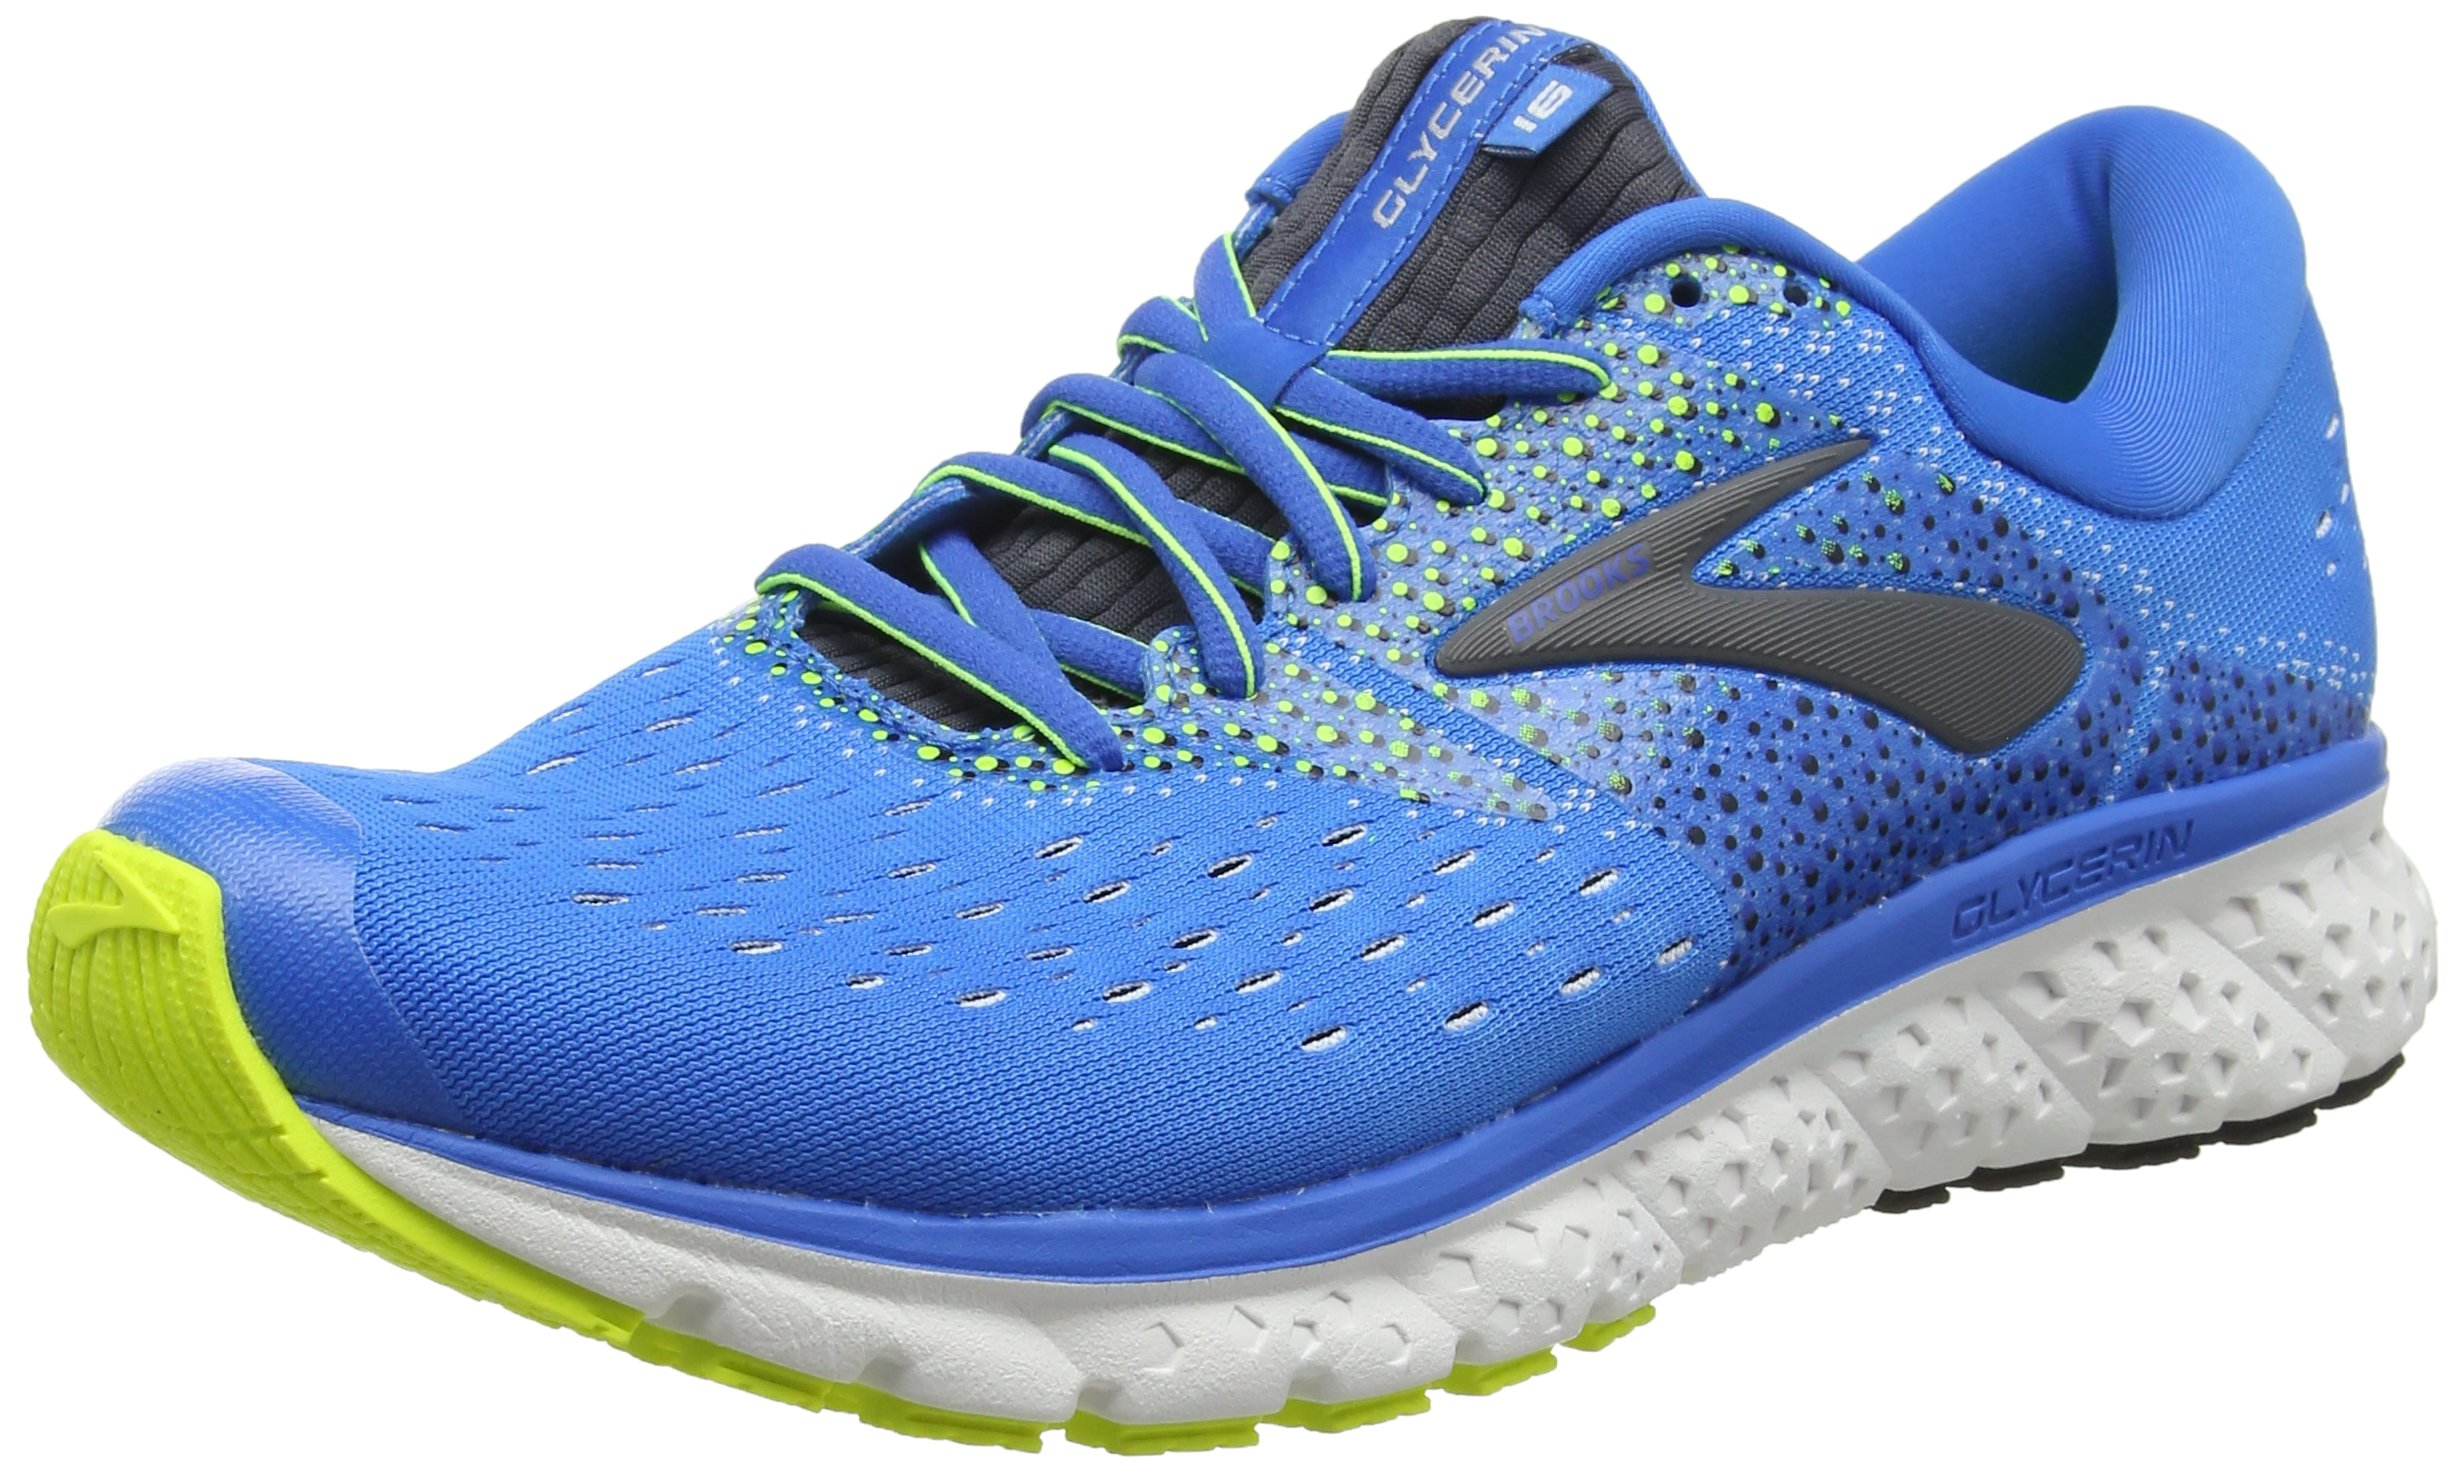 cf7982a08217f Galleon - Brooks Mens Glycerin 16 - Blue Ebony Nightlife - D - 8.5